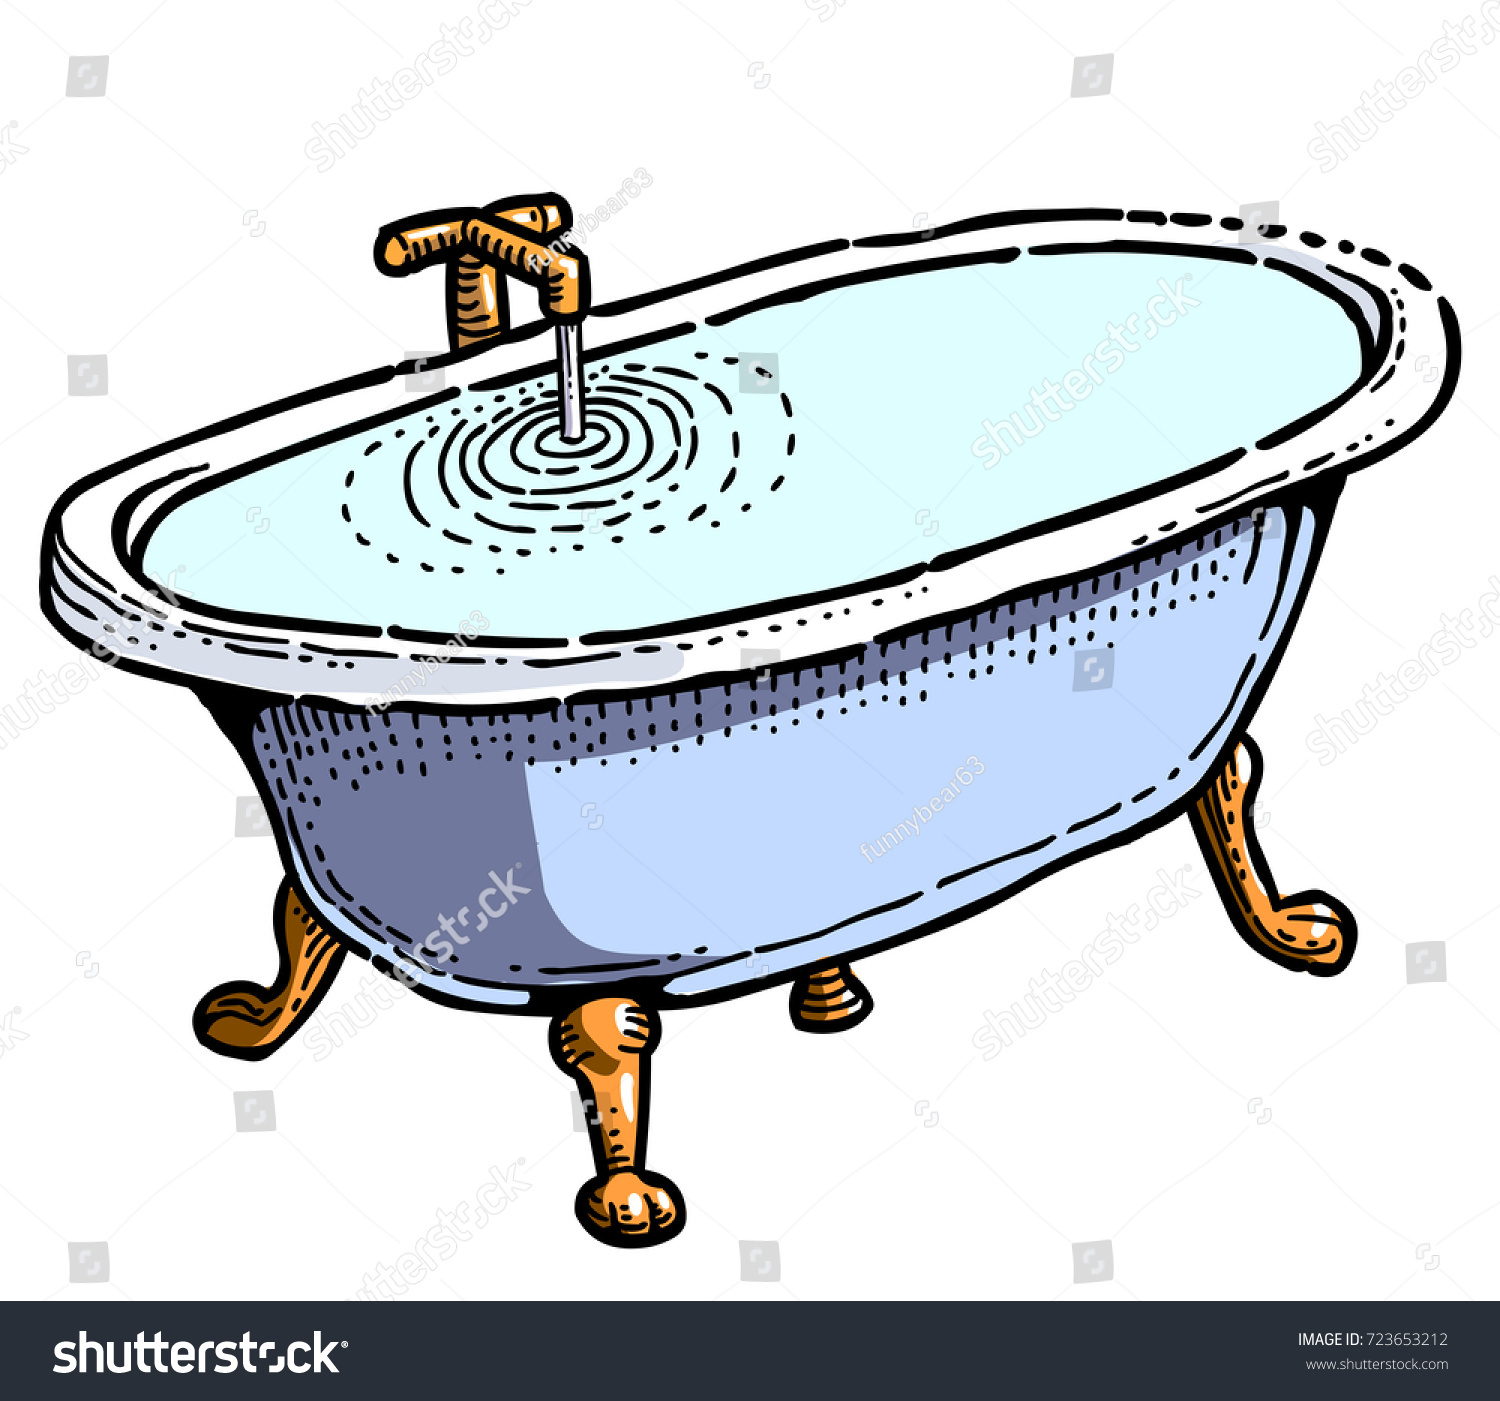 Full Bathtub Cartoon Image Artistic Freehand Stock Vector HD ...